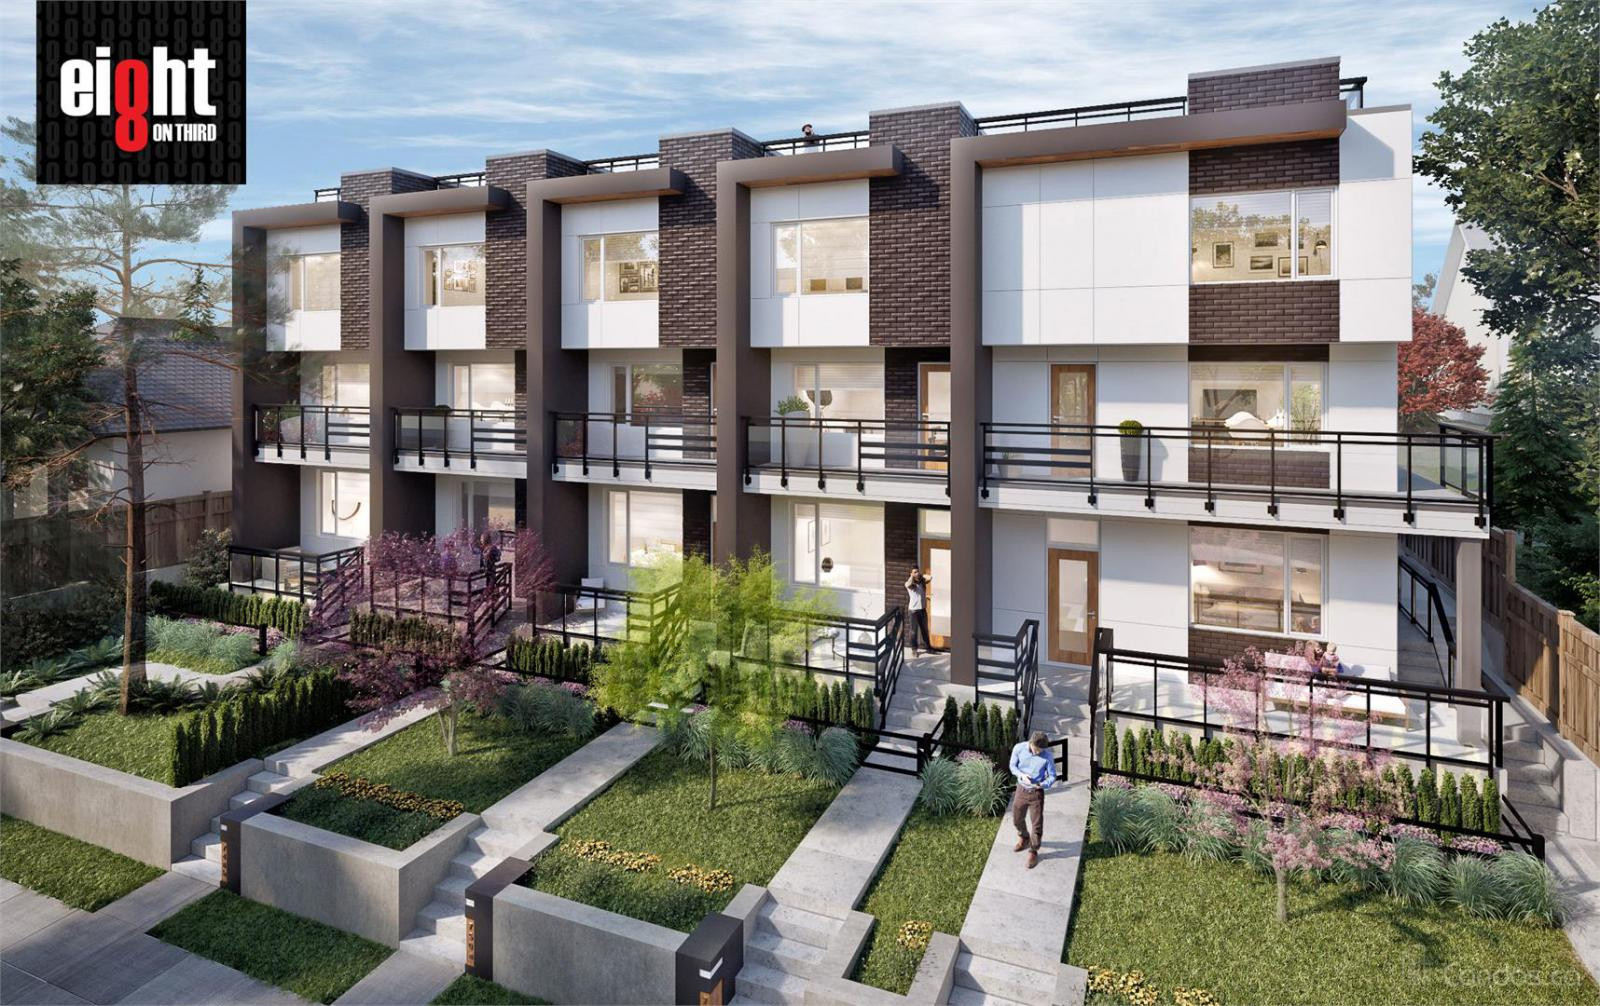 Eight On Third Townhomes at 748 E 3rd St, North Vancouver City 0